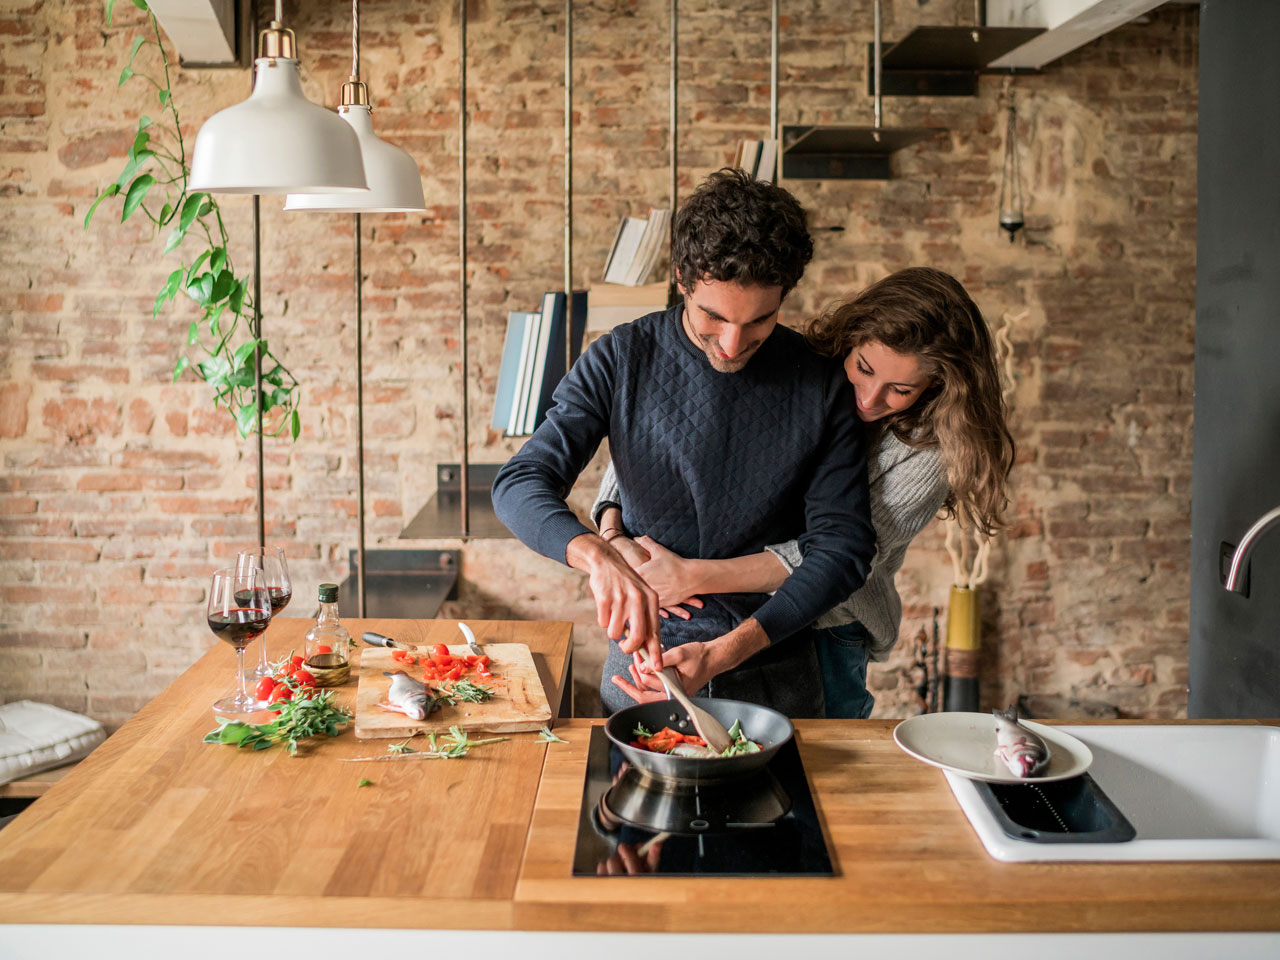 Romantic meals to cook for her